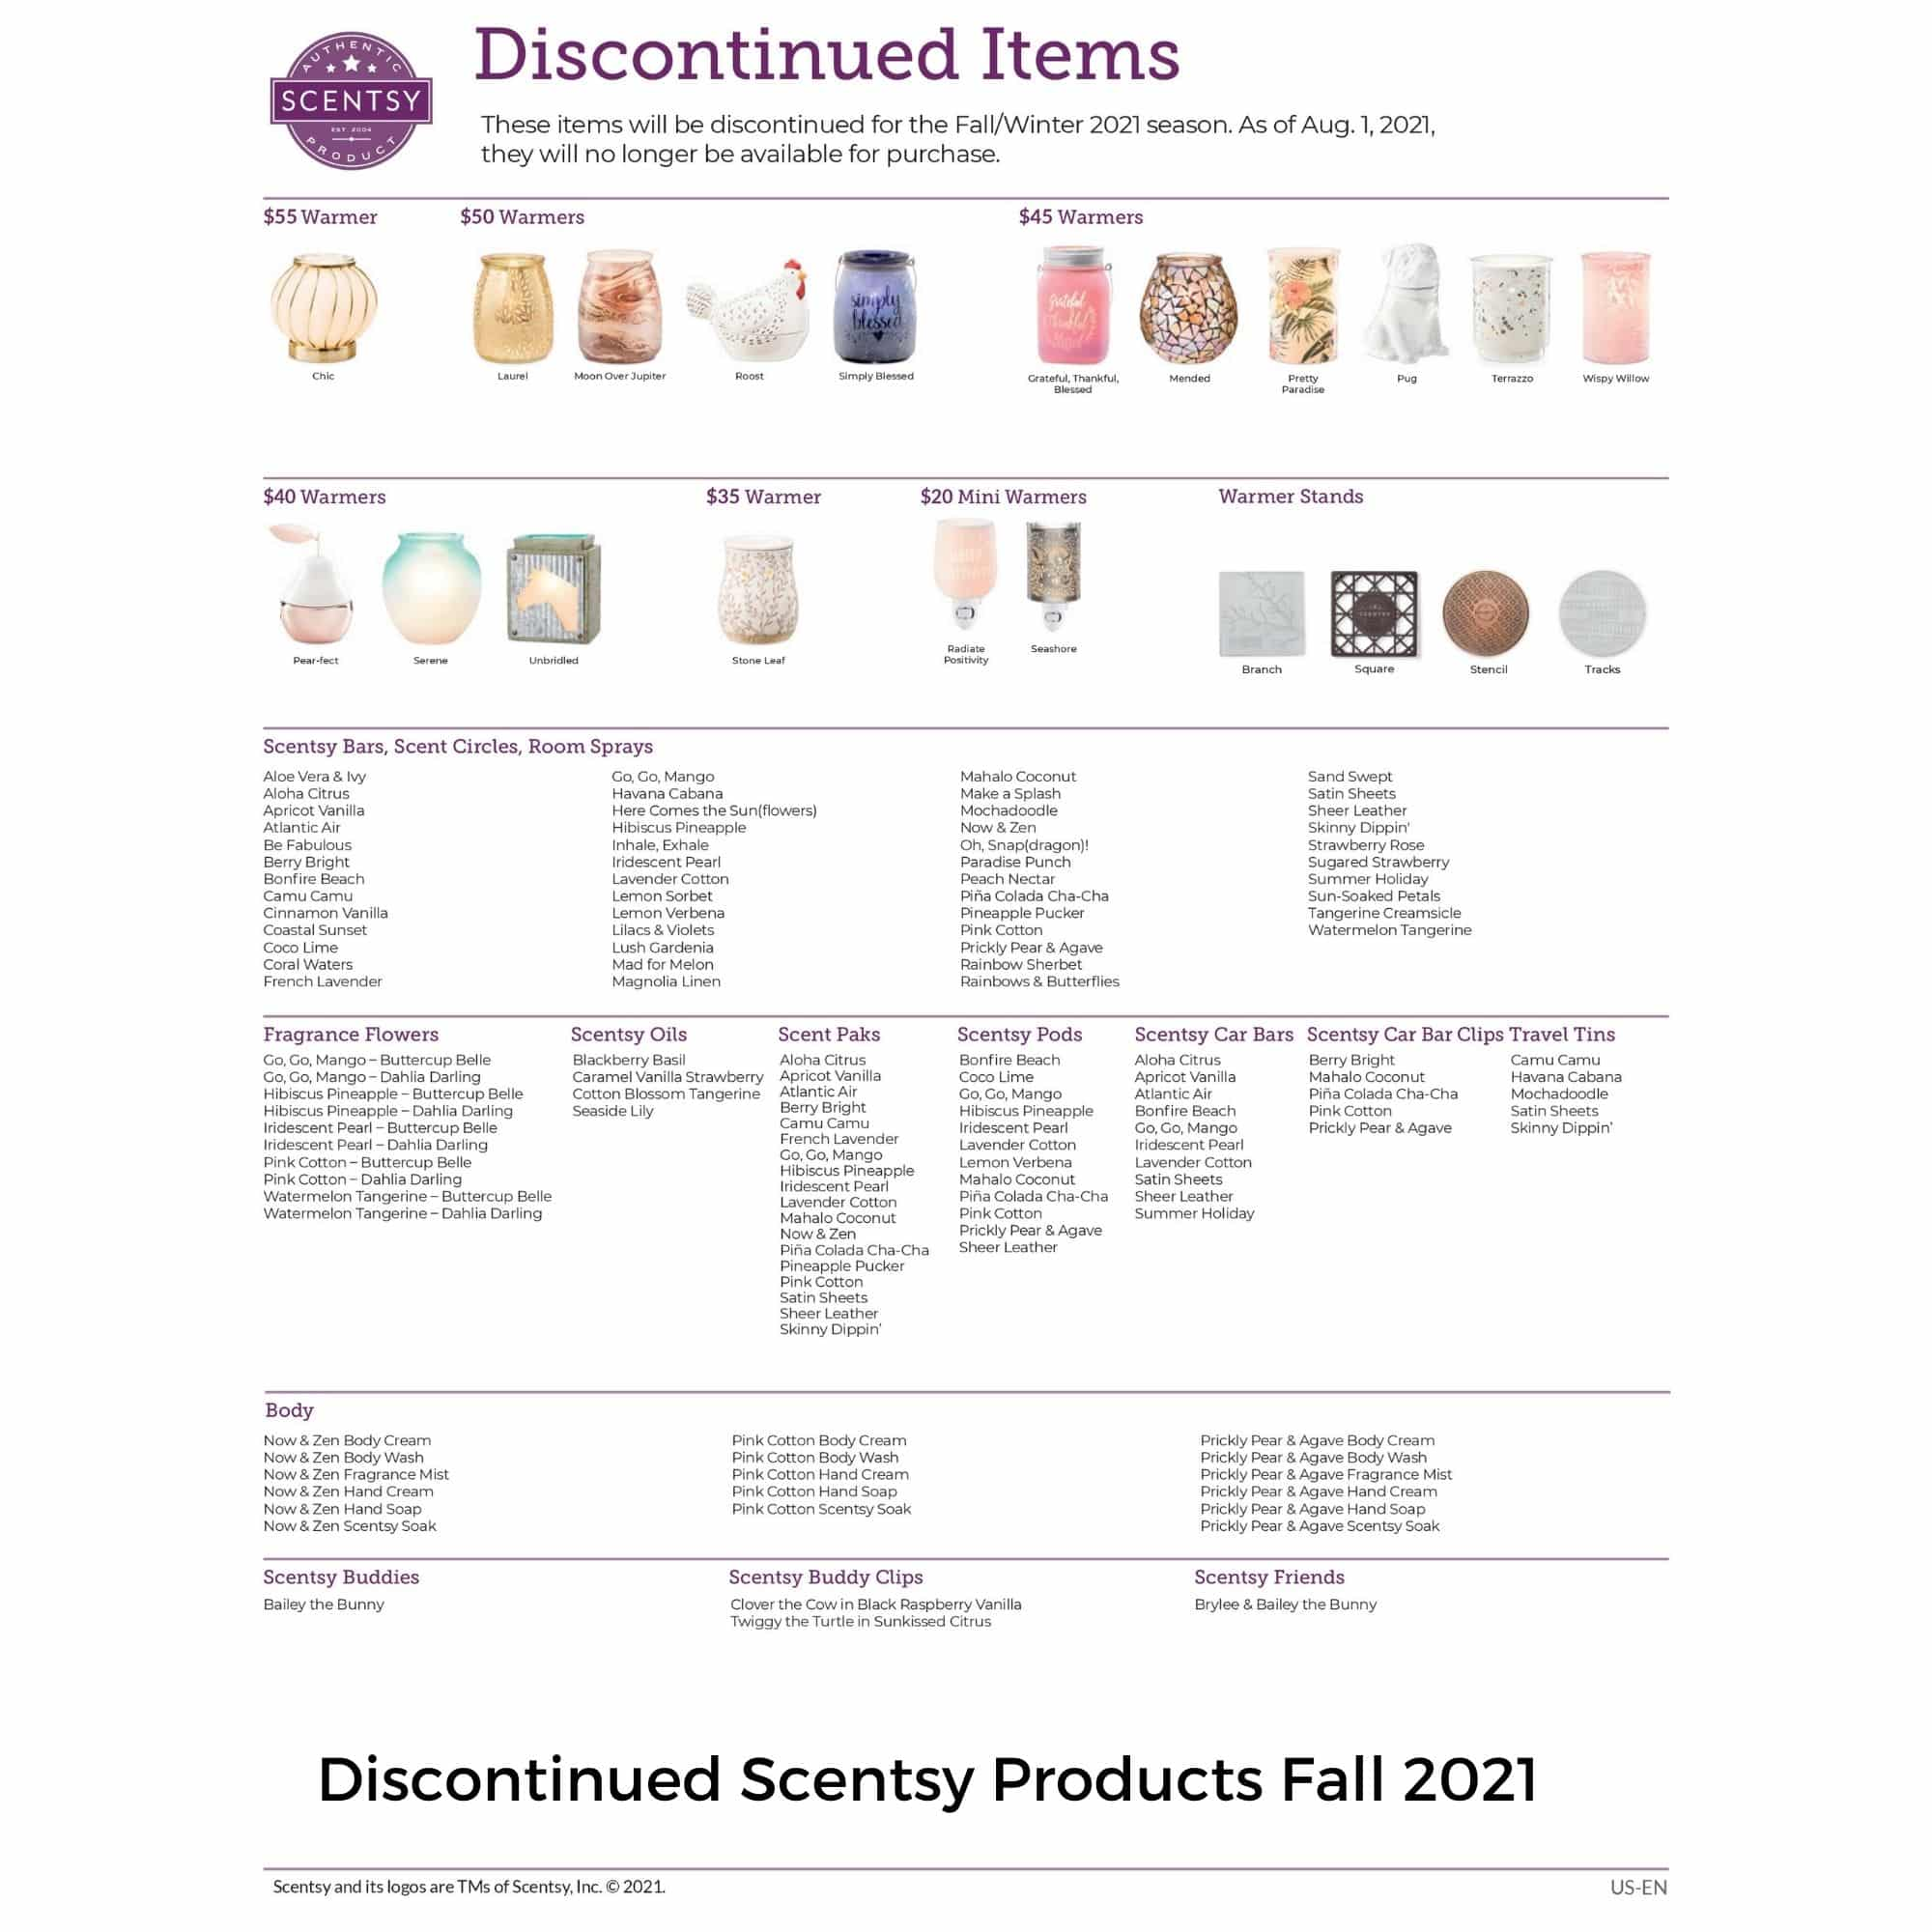 Discontinued Scentsy Products Fall 2021